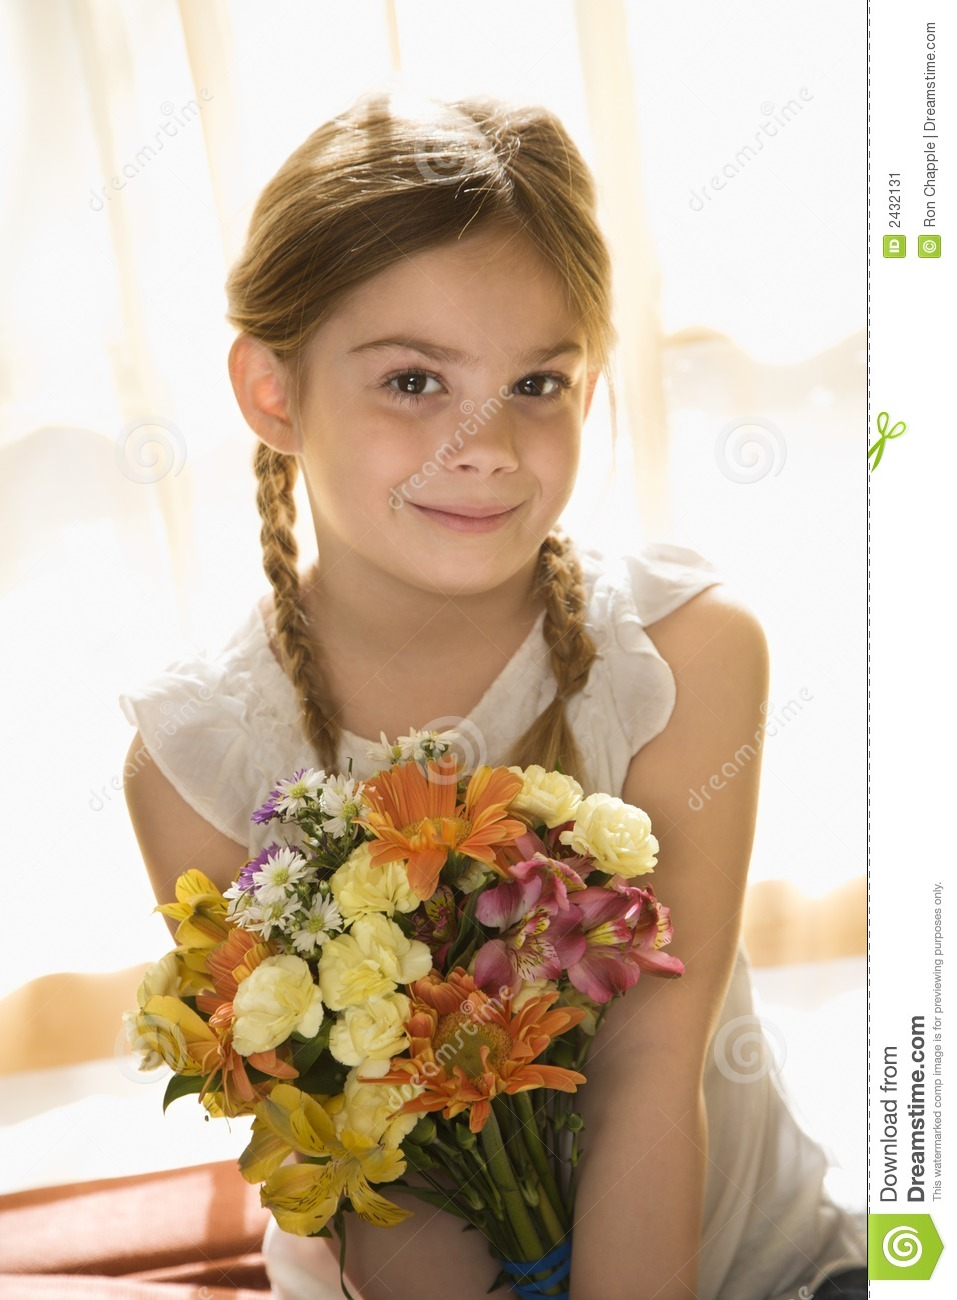 Girl Holding Flowers. Stock Image - Image: 2432131